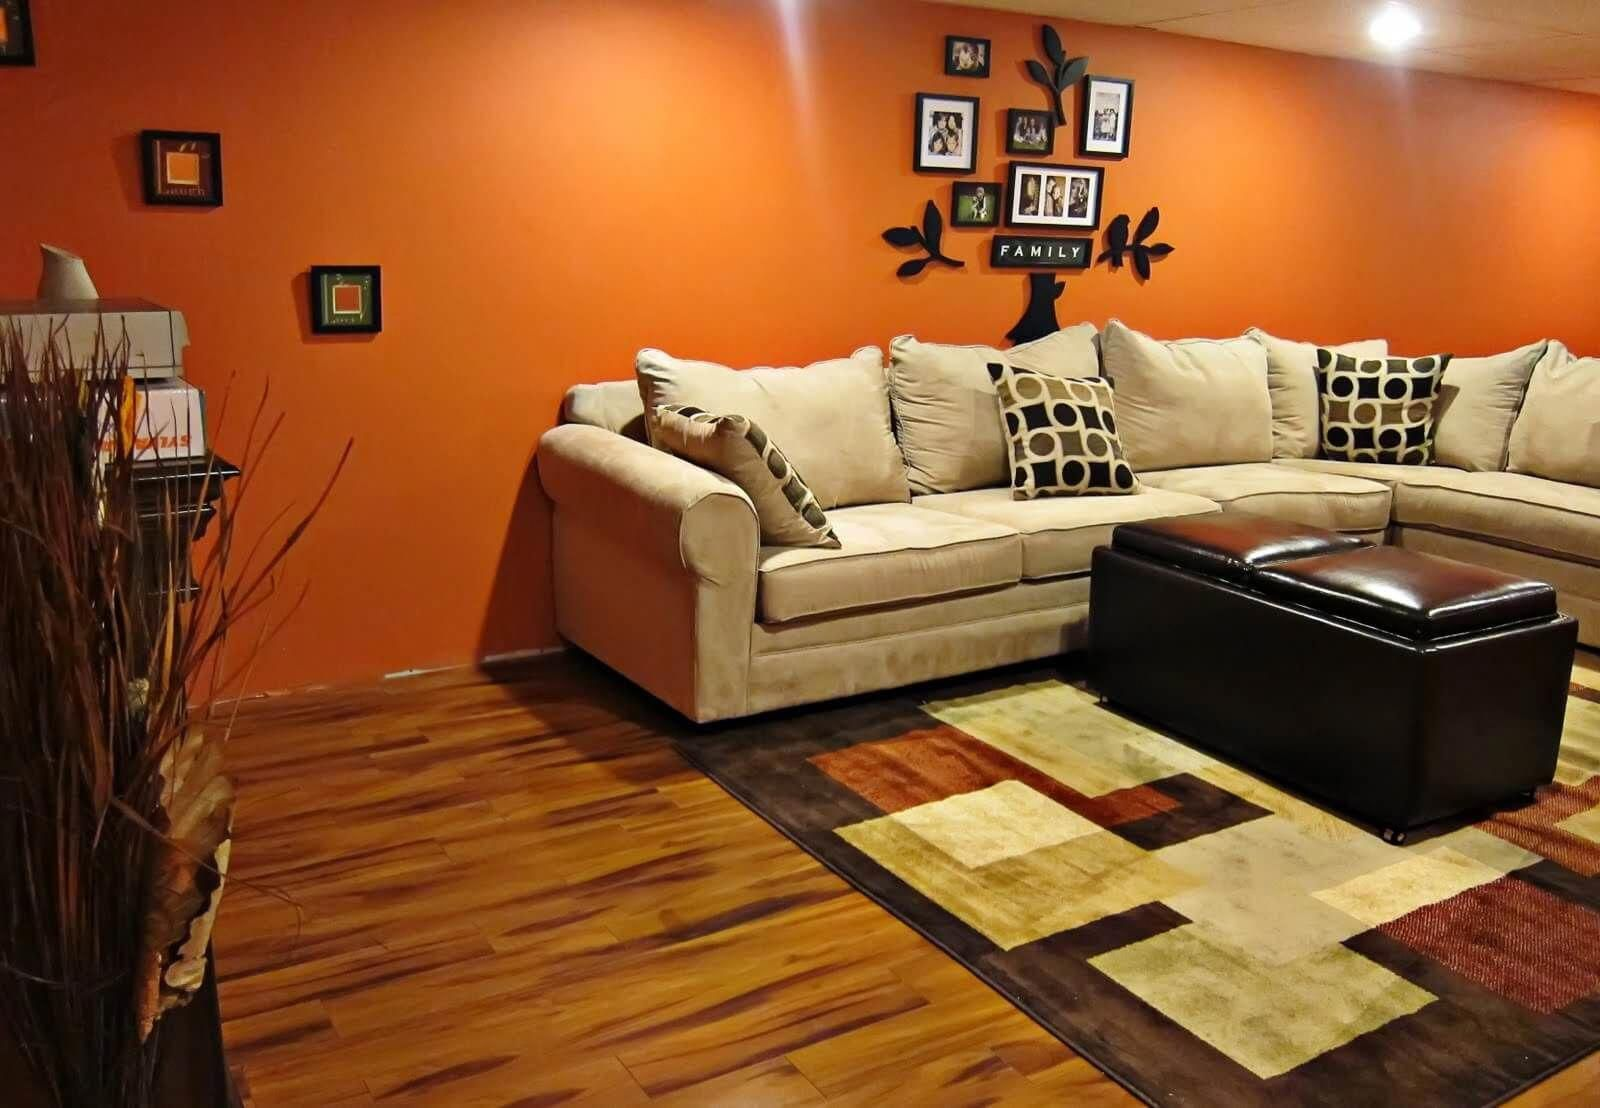 basement waterproofing tips in 2020 basement colors on basement color palette ideas id=62752